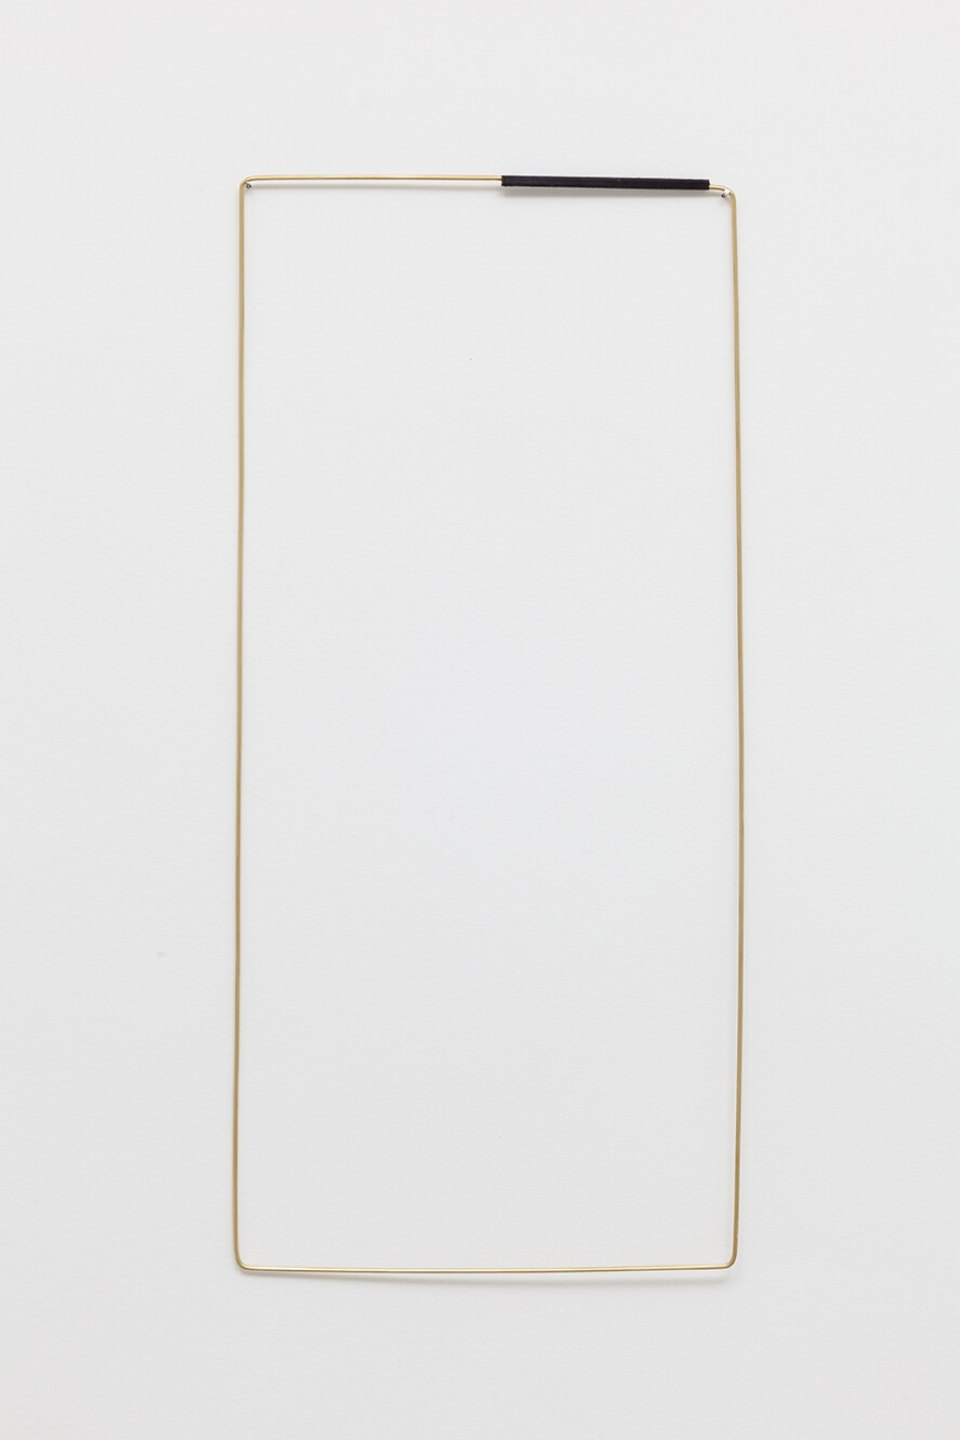 Paloma Bosquê, <em>Field</em>, 2016, brass rods and black thread, 70 × 32 cm - Mendes Wood DM